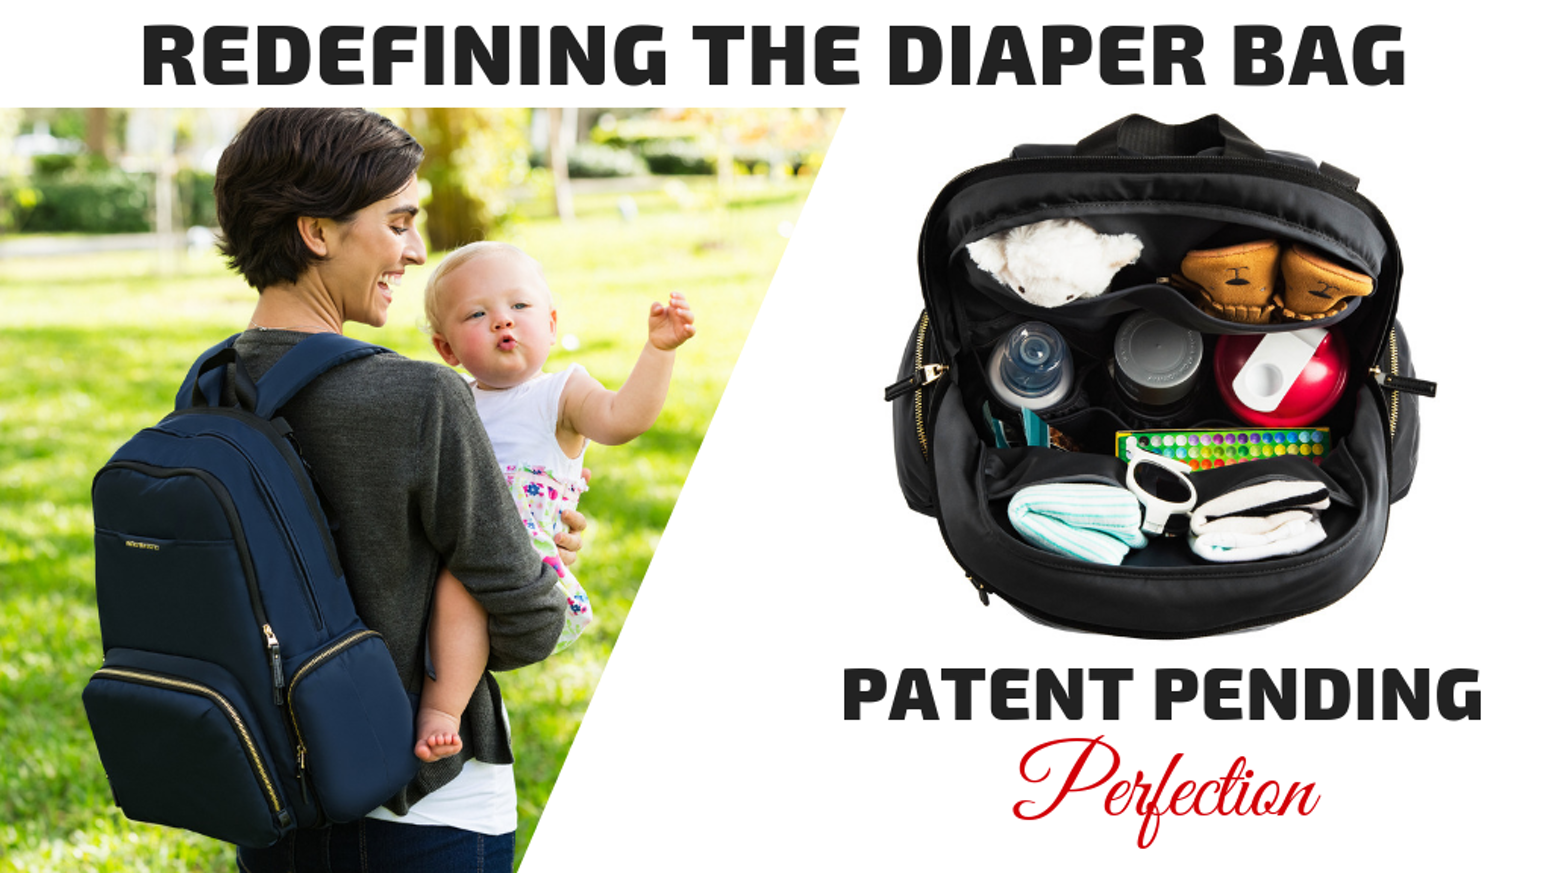 538ae72b0c The Mommy Bag: The Smart Baby Diaper Bag by Ethan & Emma by Ethan ...